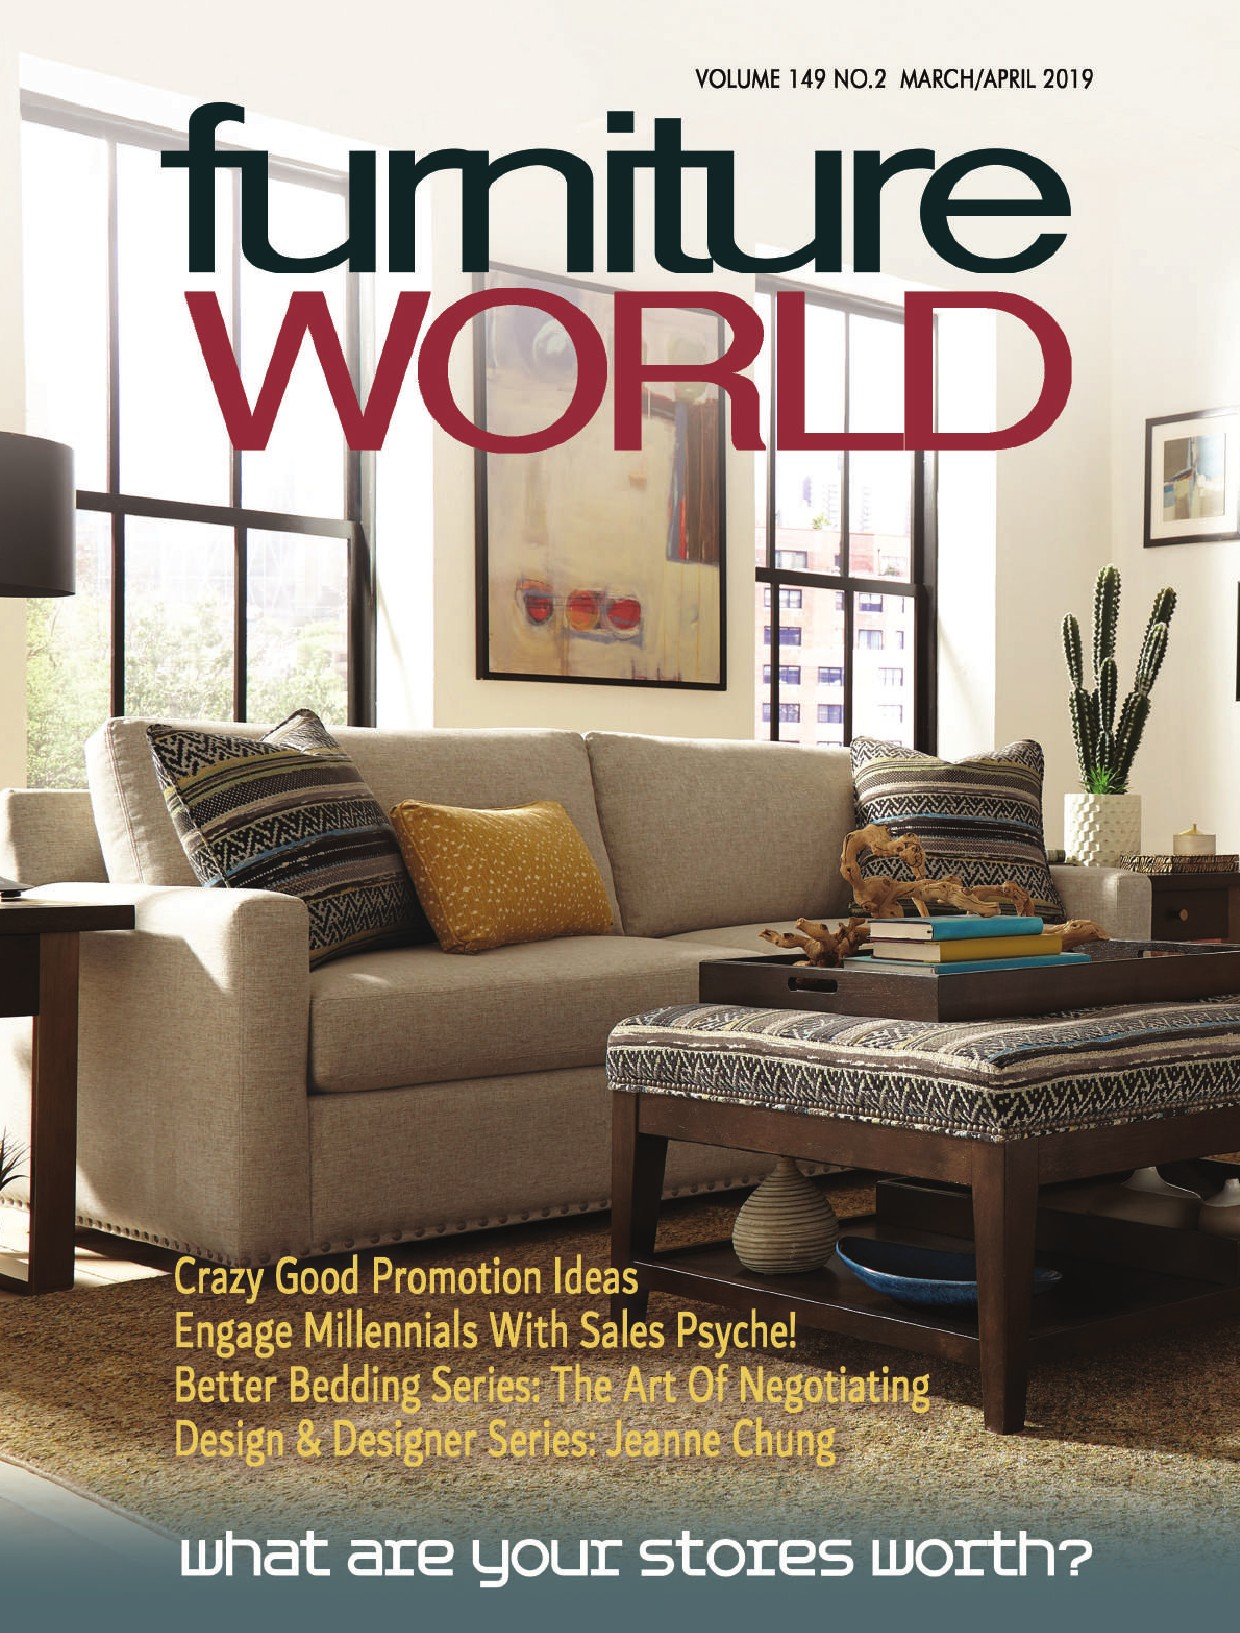 Furniture World Magazine March April 2019 Powered By Pageturnpro Com